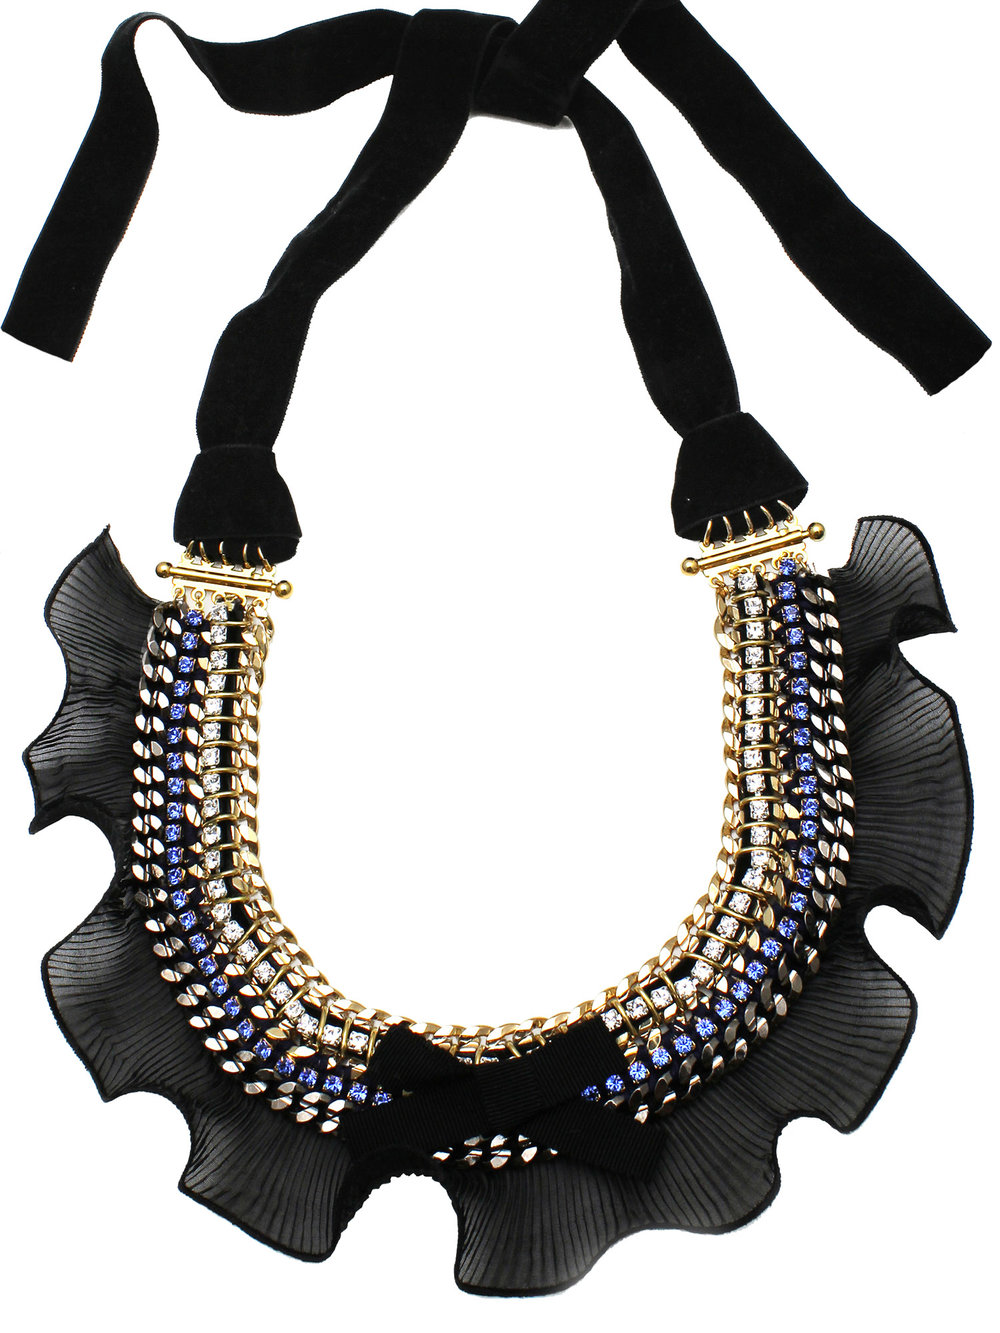 063 - Black Frill Necklace.jpg